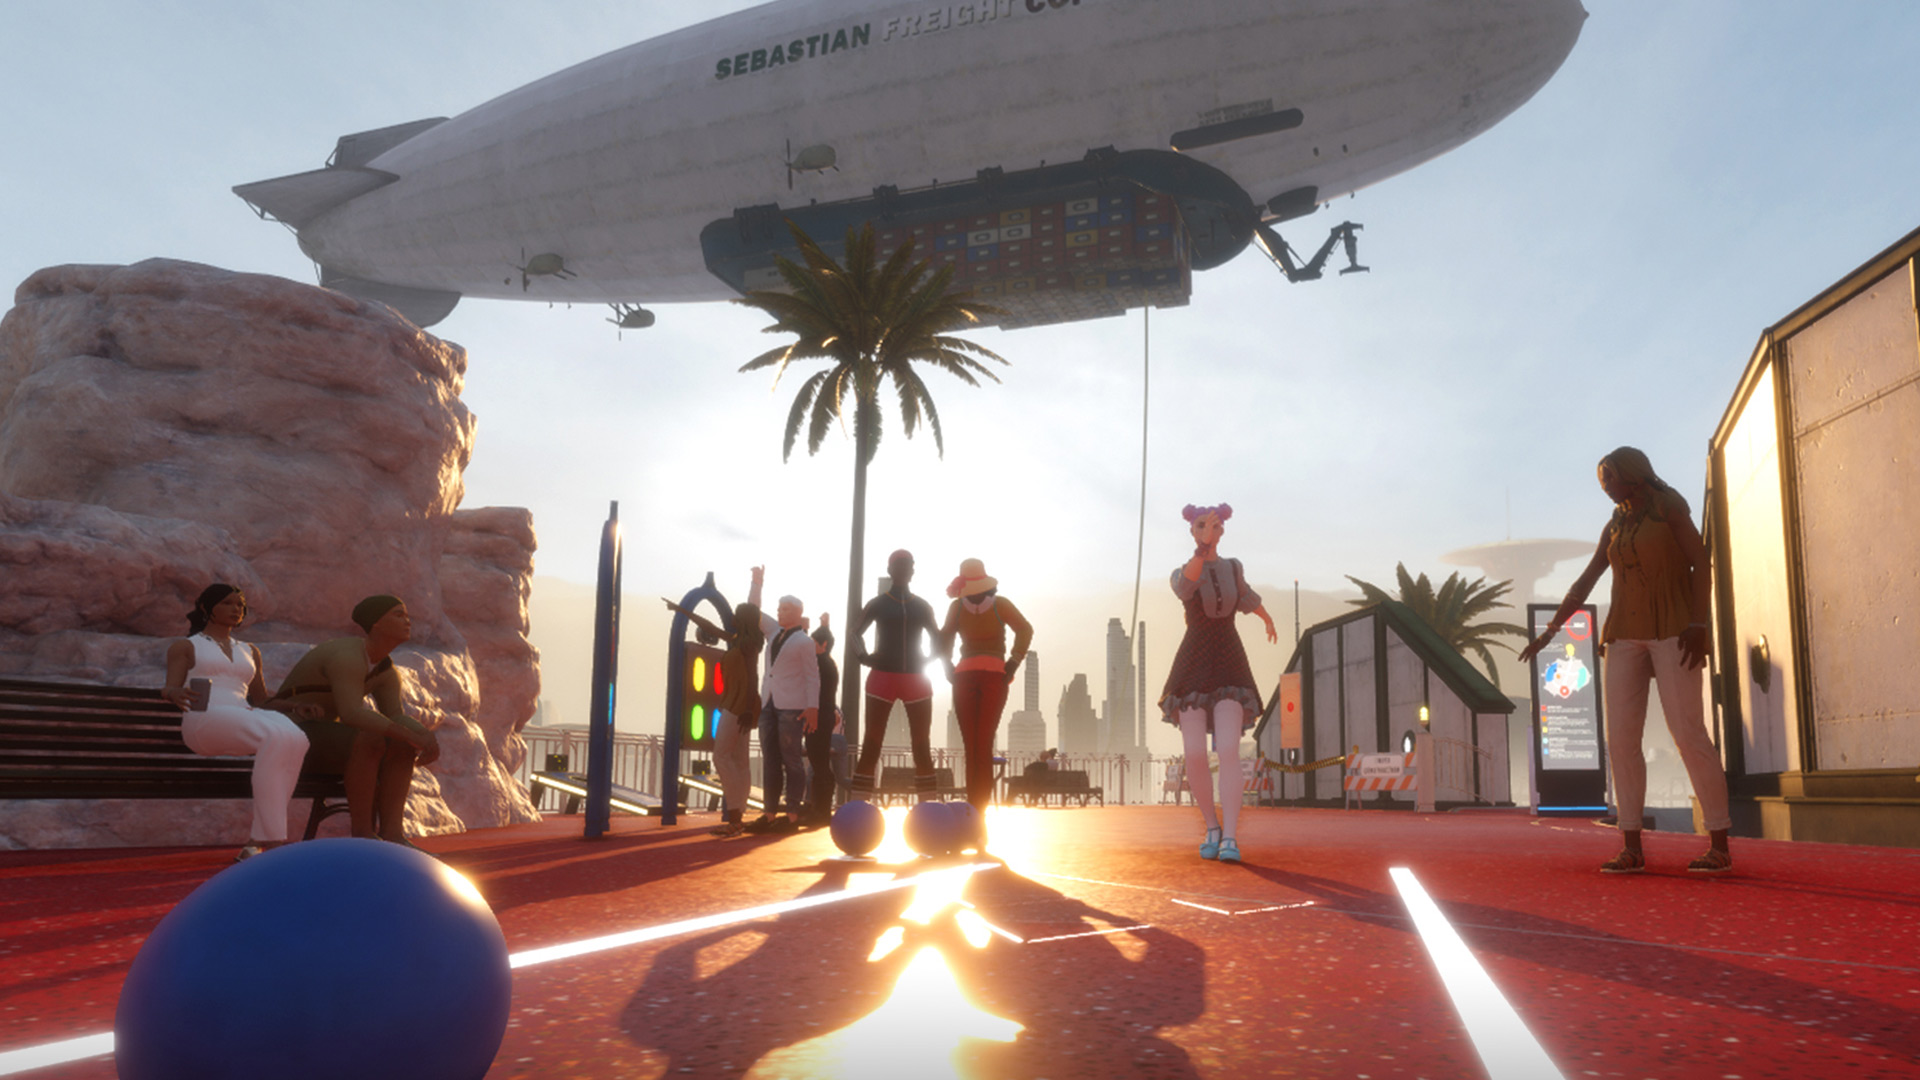 Linden Lab CEO: 'We're Pitching 'Sansar' Less as a VR